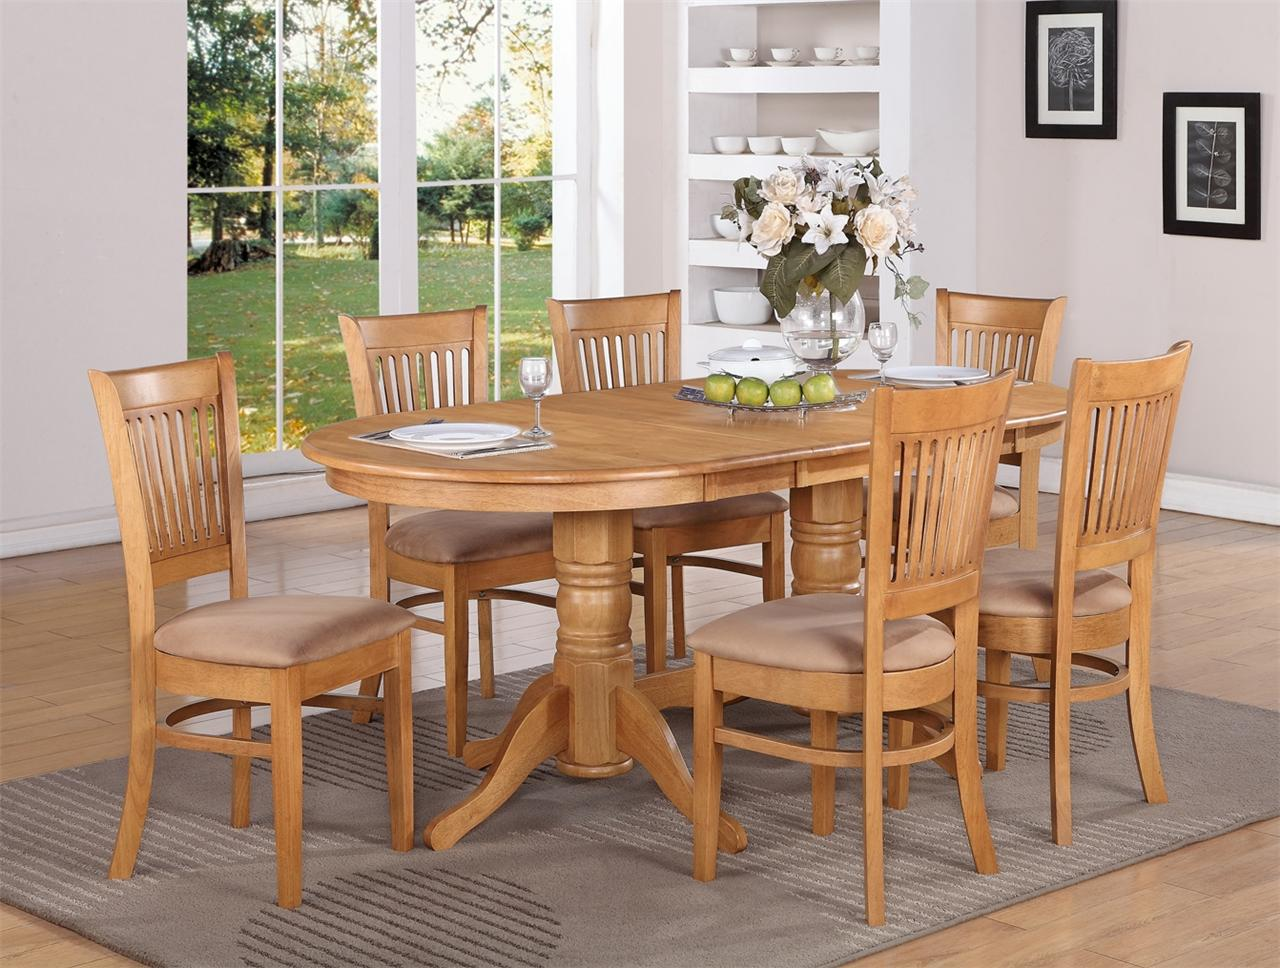 7 PC VANCOUVER OVAL DINETTE KITCHEN DINING TABLE W6